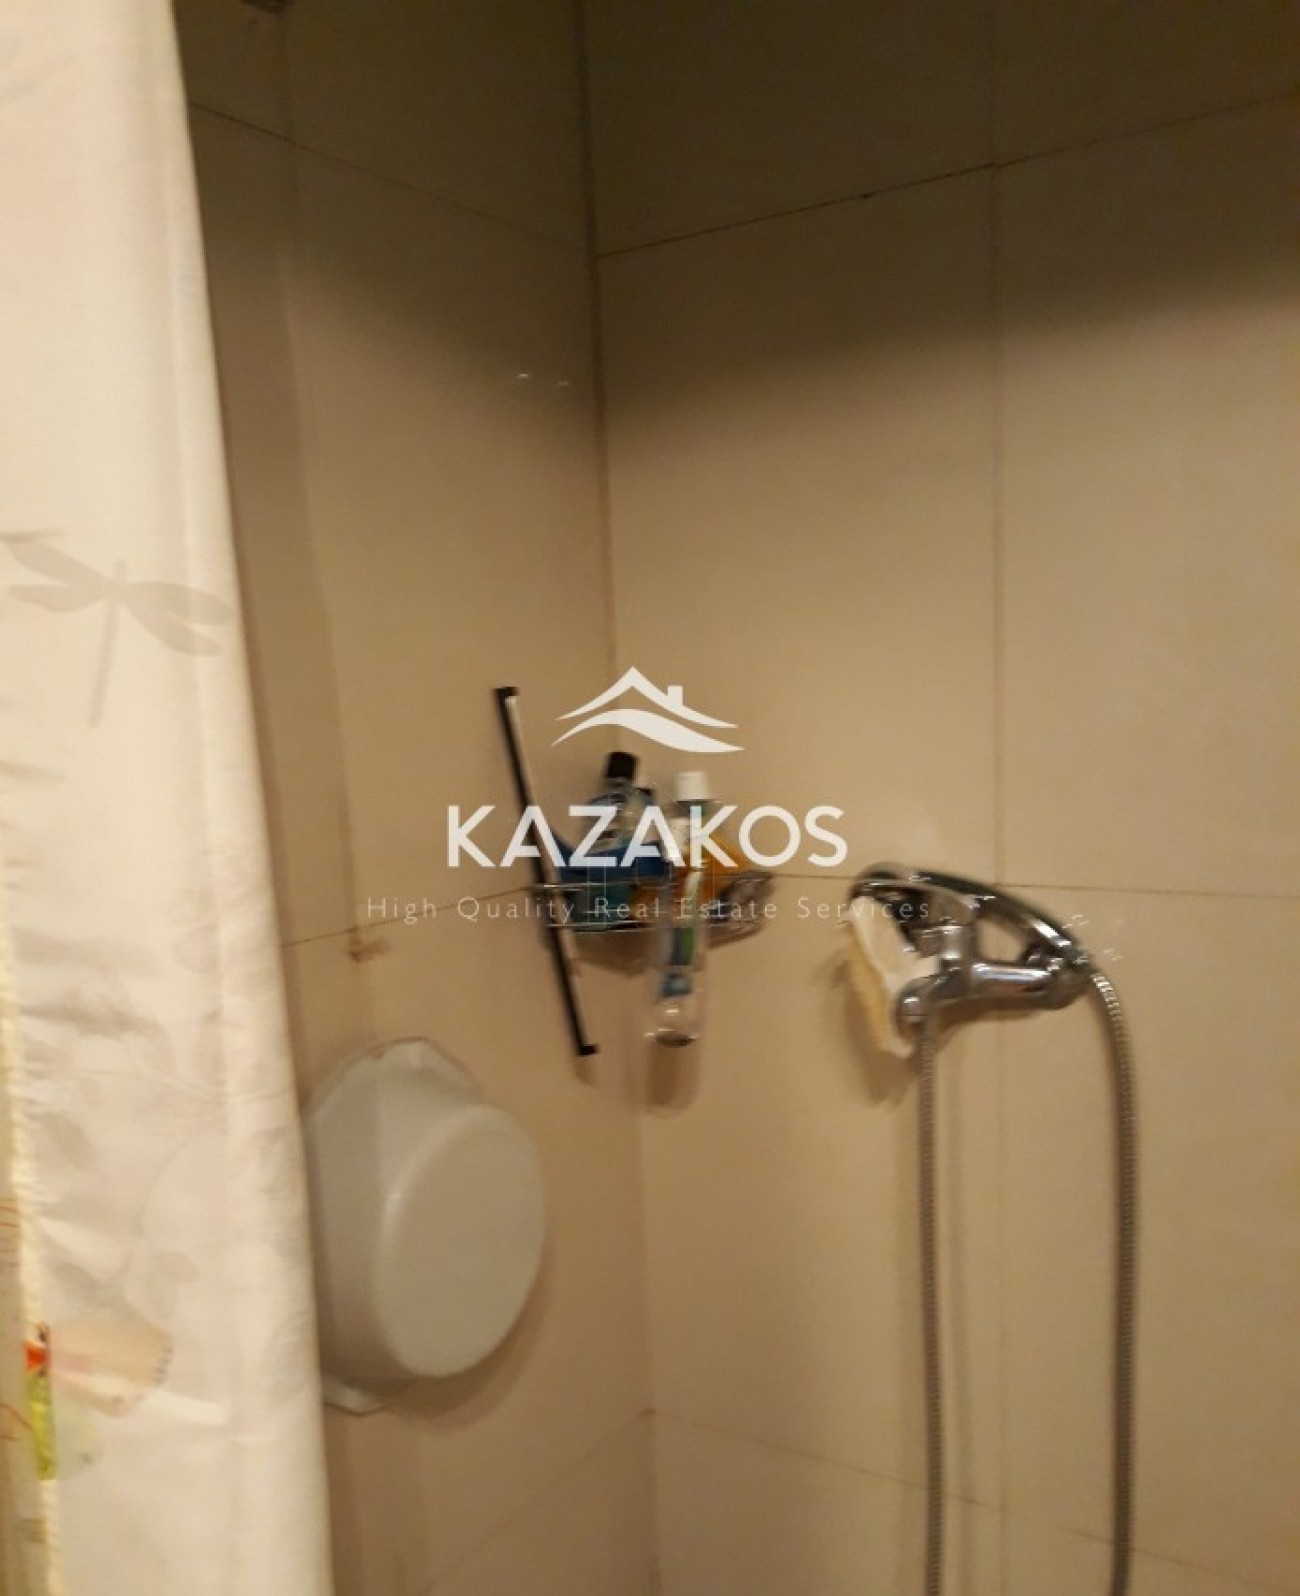 Townhouse for Sale in Kipseli, Athens City Center, Greece